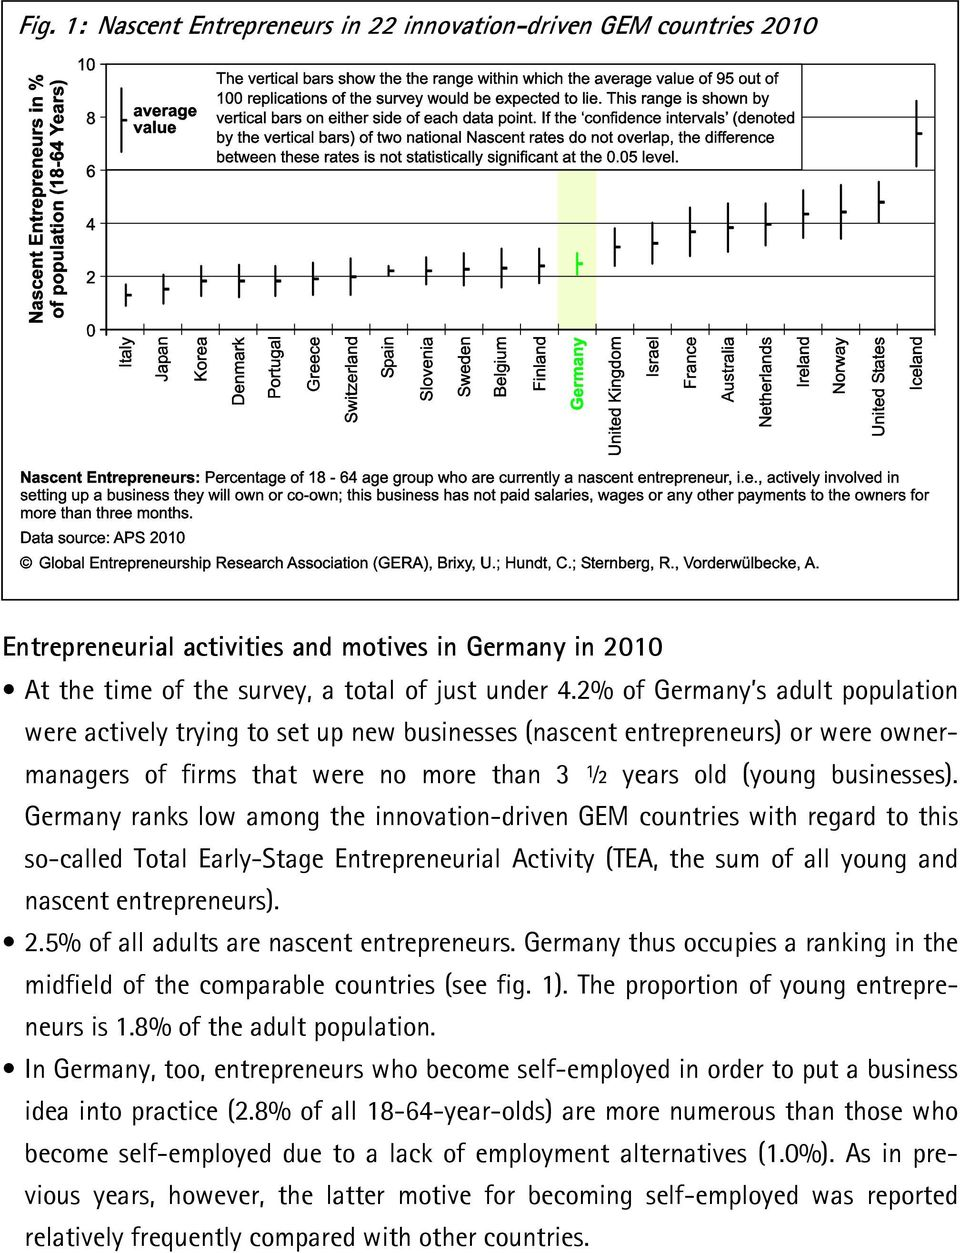 Germany ranks low among the innovation-driven GEM countries with regard to this so-called Total Early-Stage Entrepreneurial Activity (TEA, the sum of all young and nascent entrepreneurs). 2.